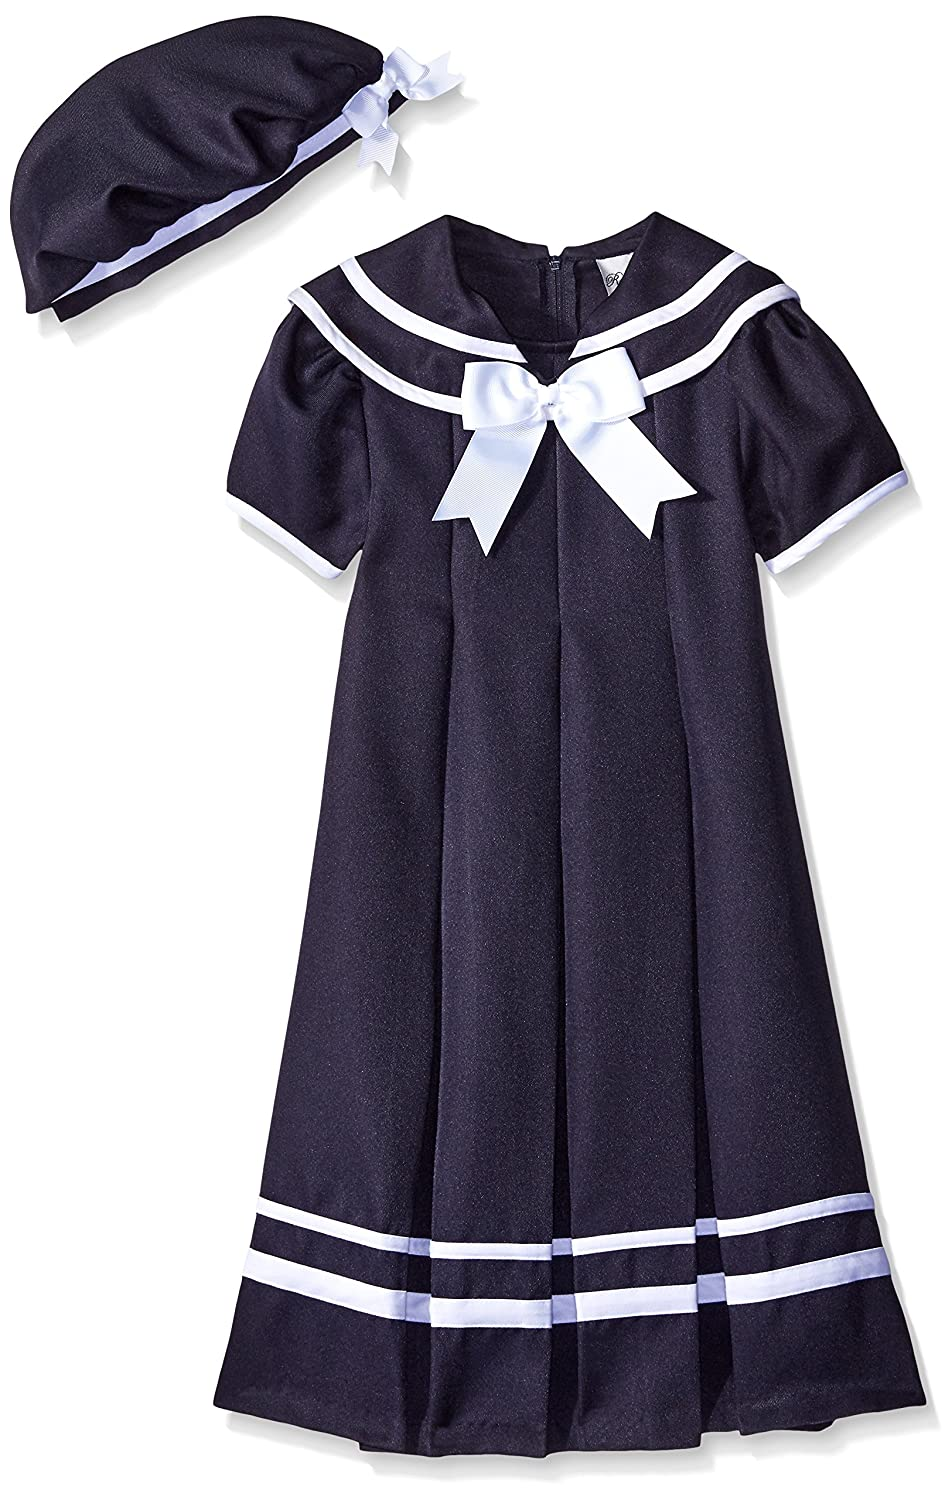 1930s Childrens Fashion: Girls, Boys, Toddler, Baby Costumes Rare Editions Big Girls Navy Nautical Dress $29.99 AT vintagedancer.com